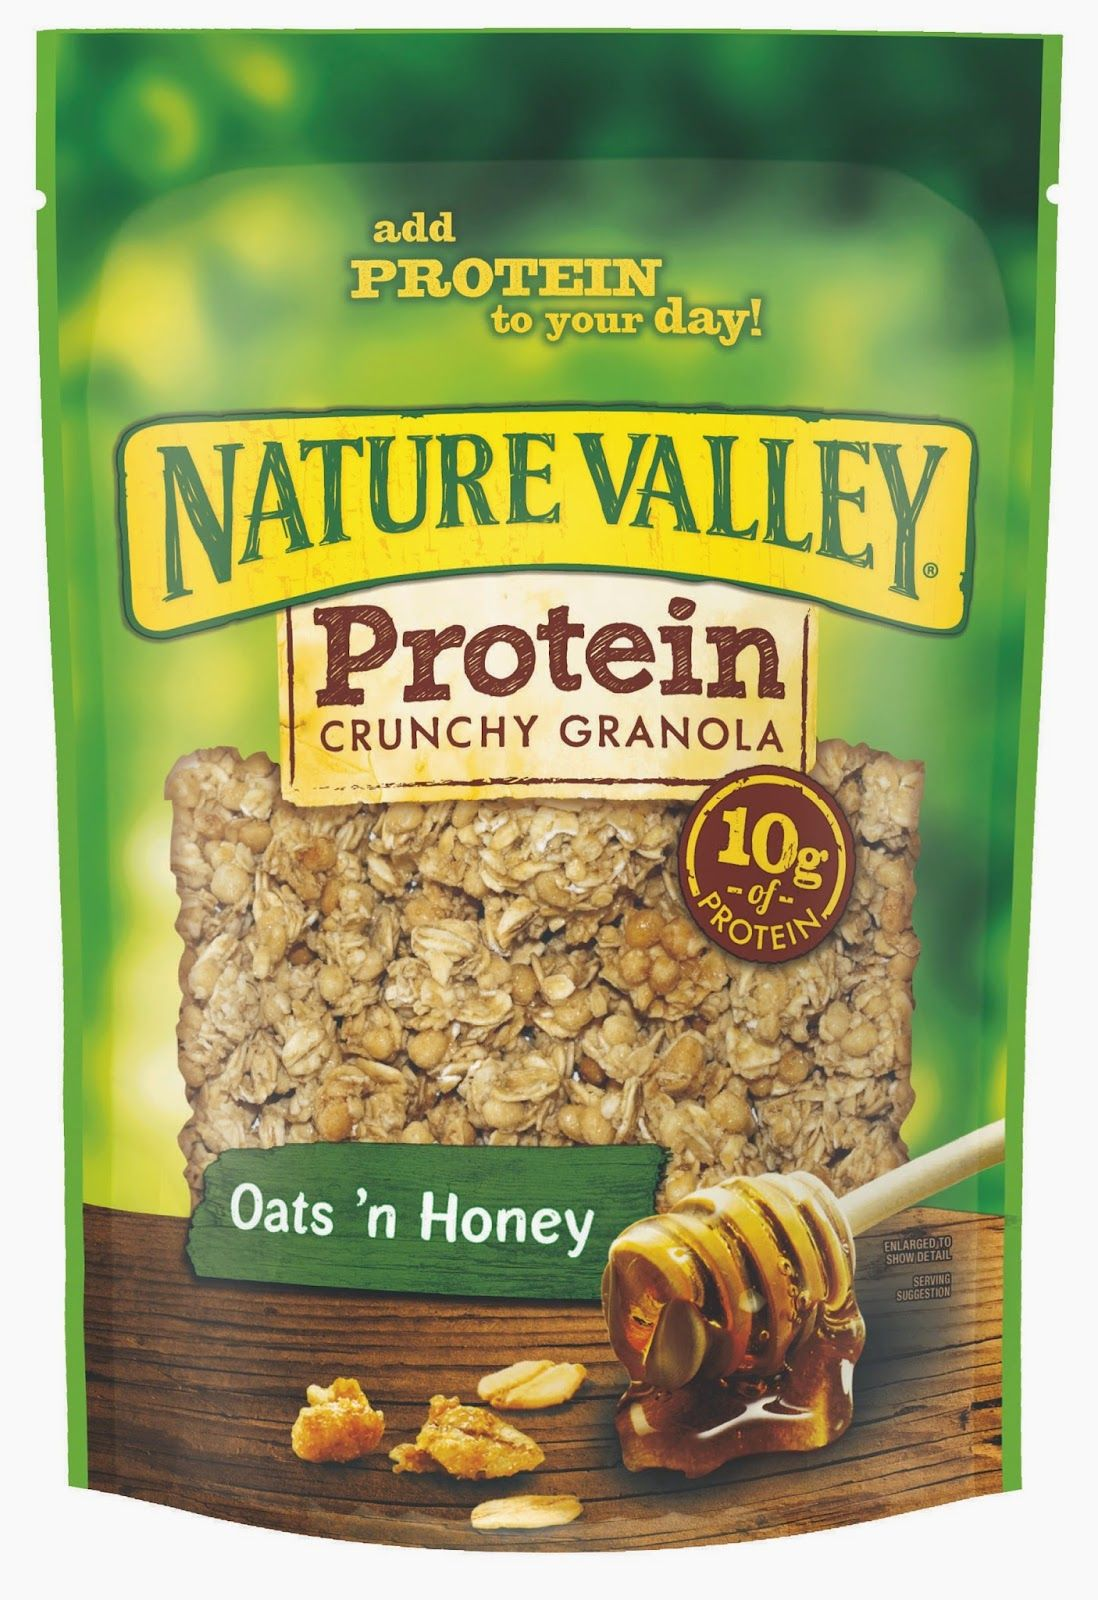 Katie's Pantry Partners Great Sale on Nature Valley